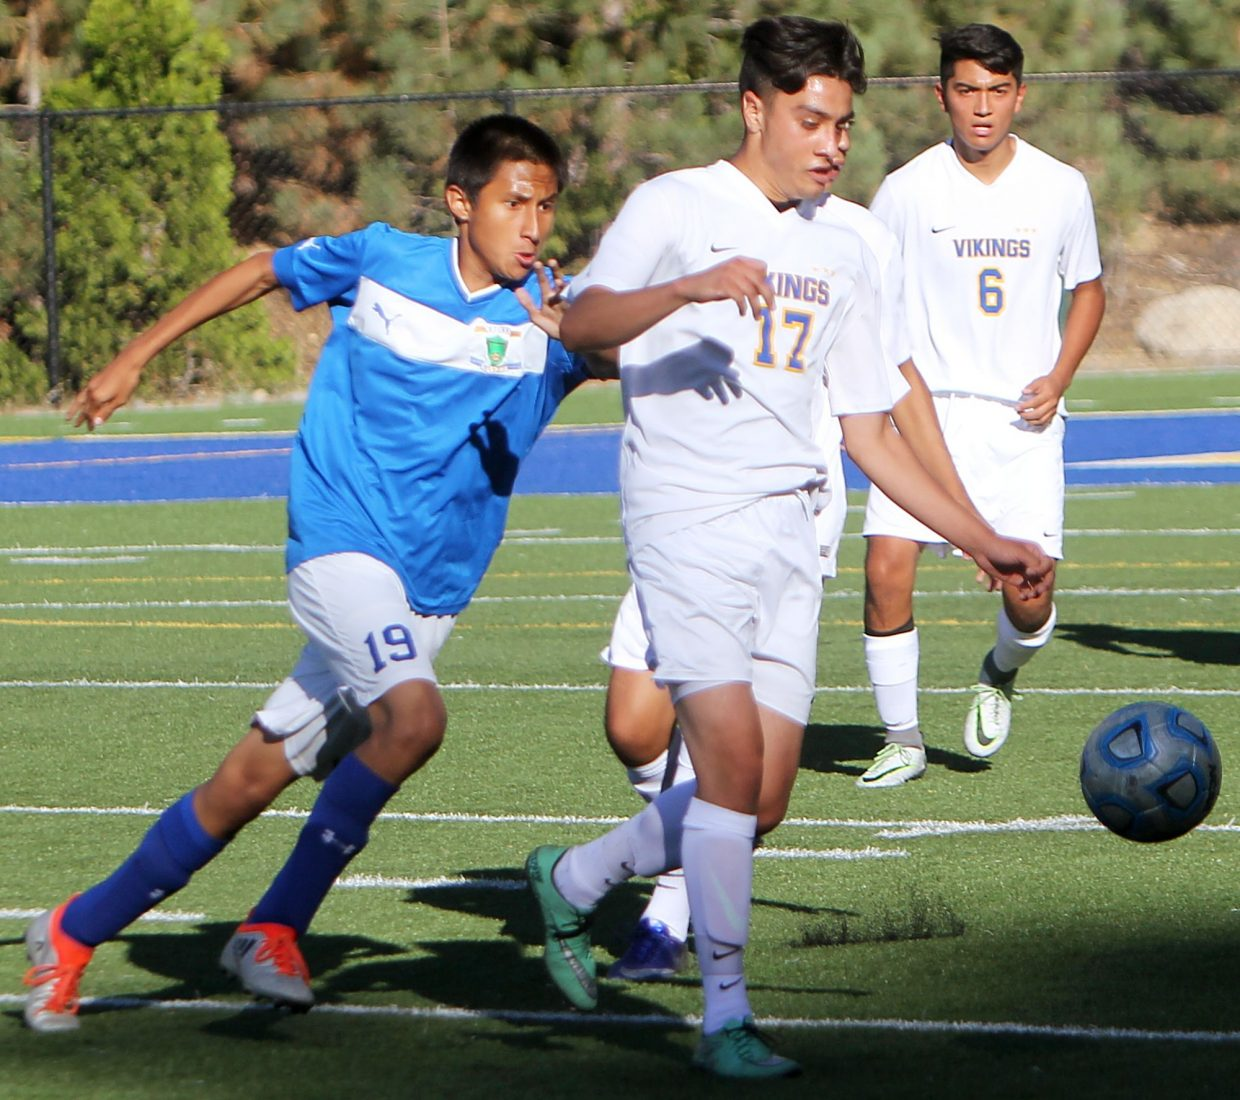 South Tahoe senior Gybran Marquez dribbles past a Lowry defender during the Vikings' league match against the Buckaroos on Wednesday, Sept. 7, at Viking Stadium.